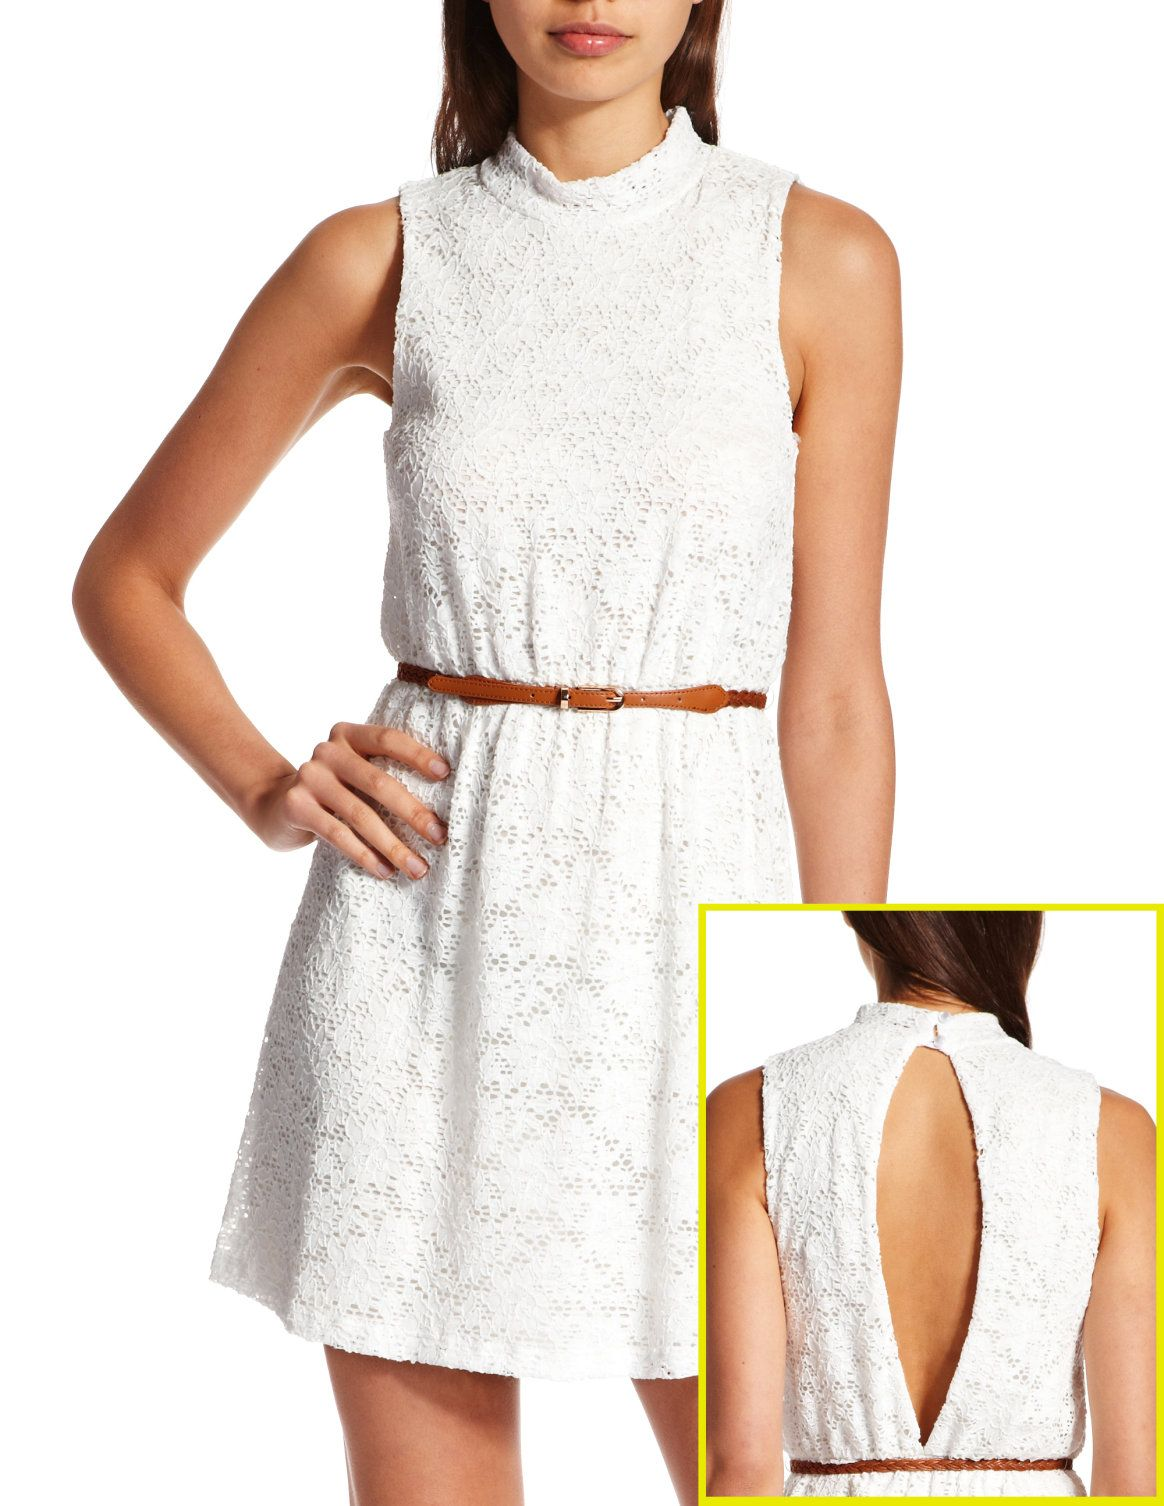 Lace dress open back  OpenBack Crochet Lace Dress  My Style  Pinterest  Crochet lace